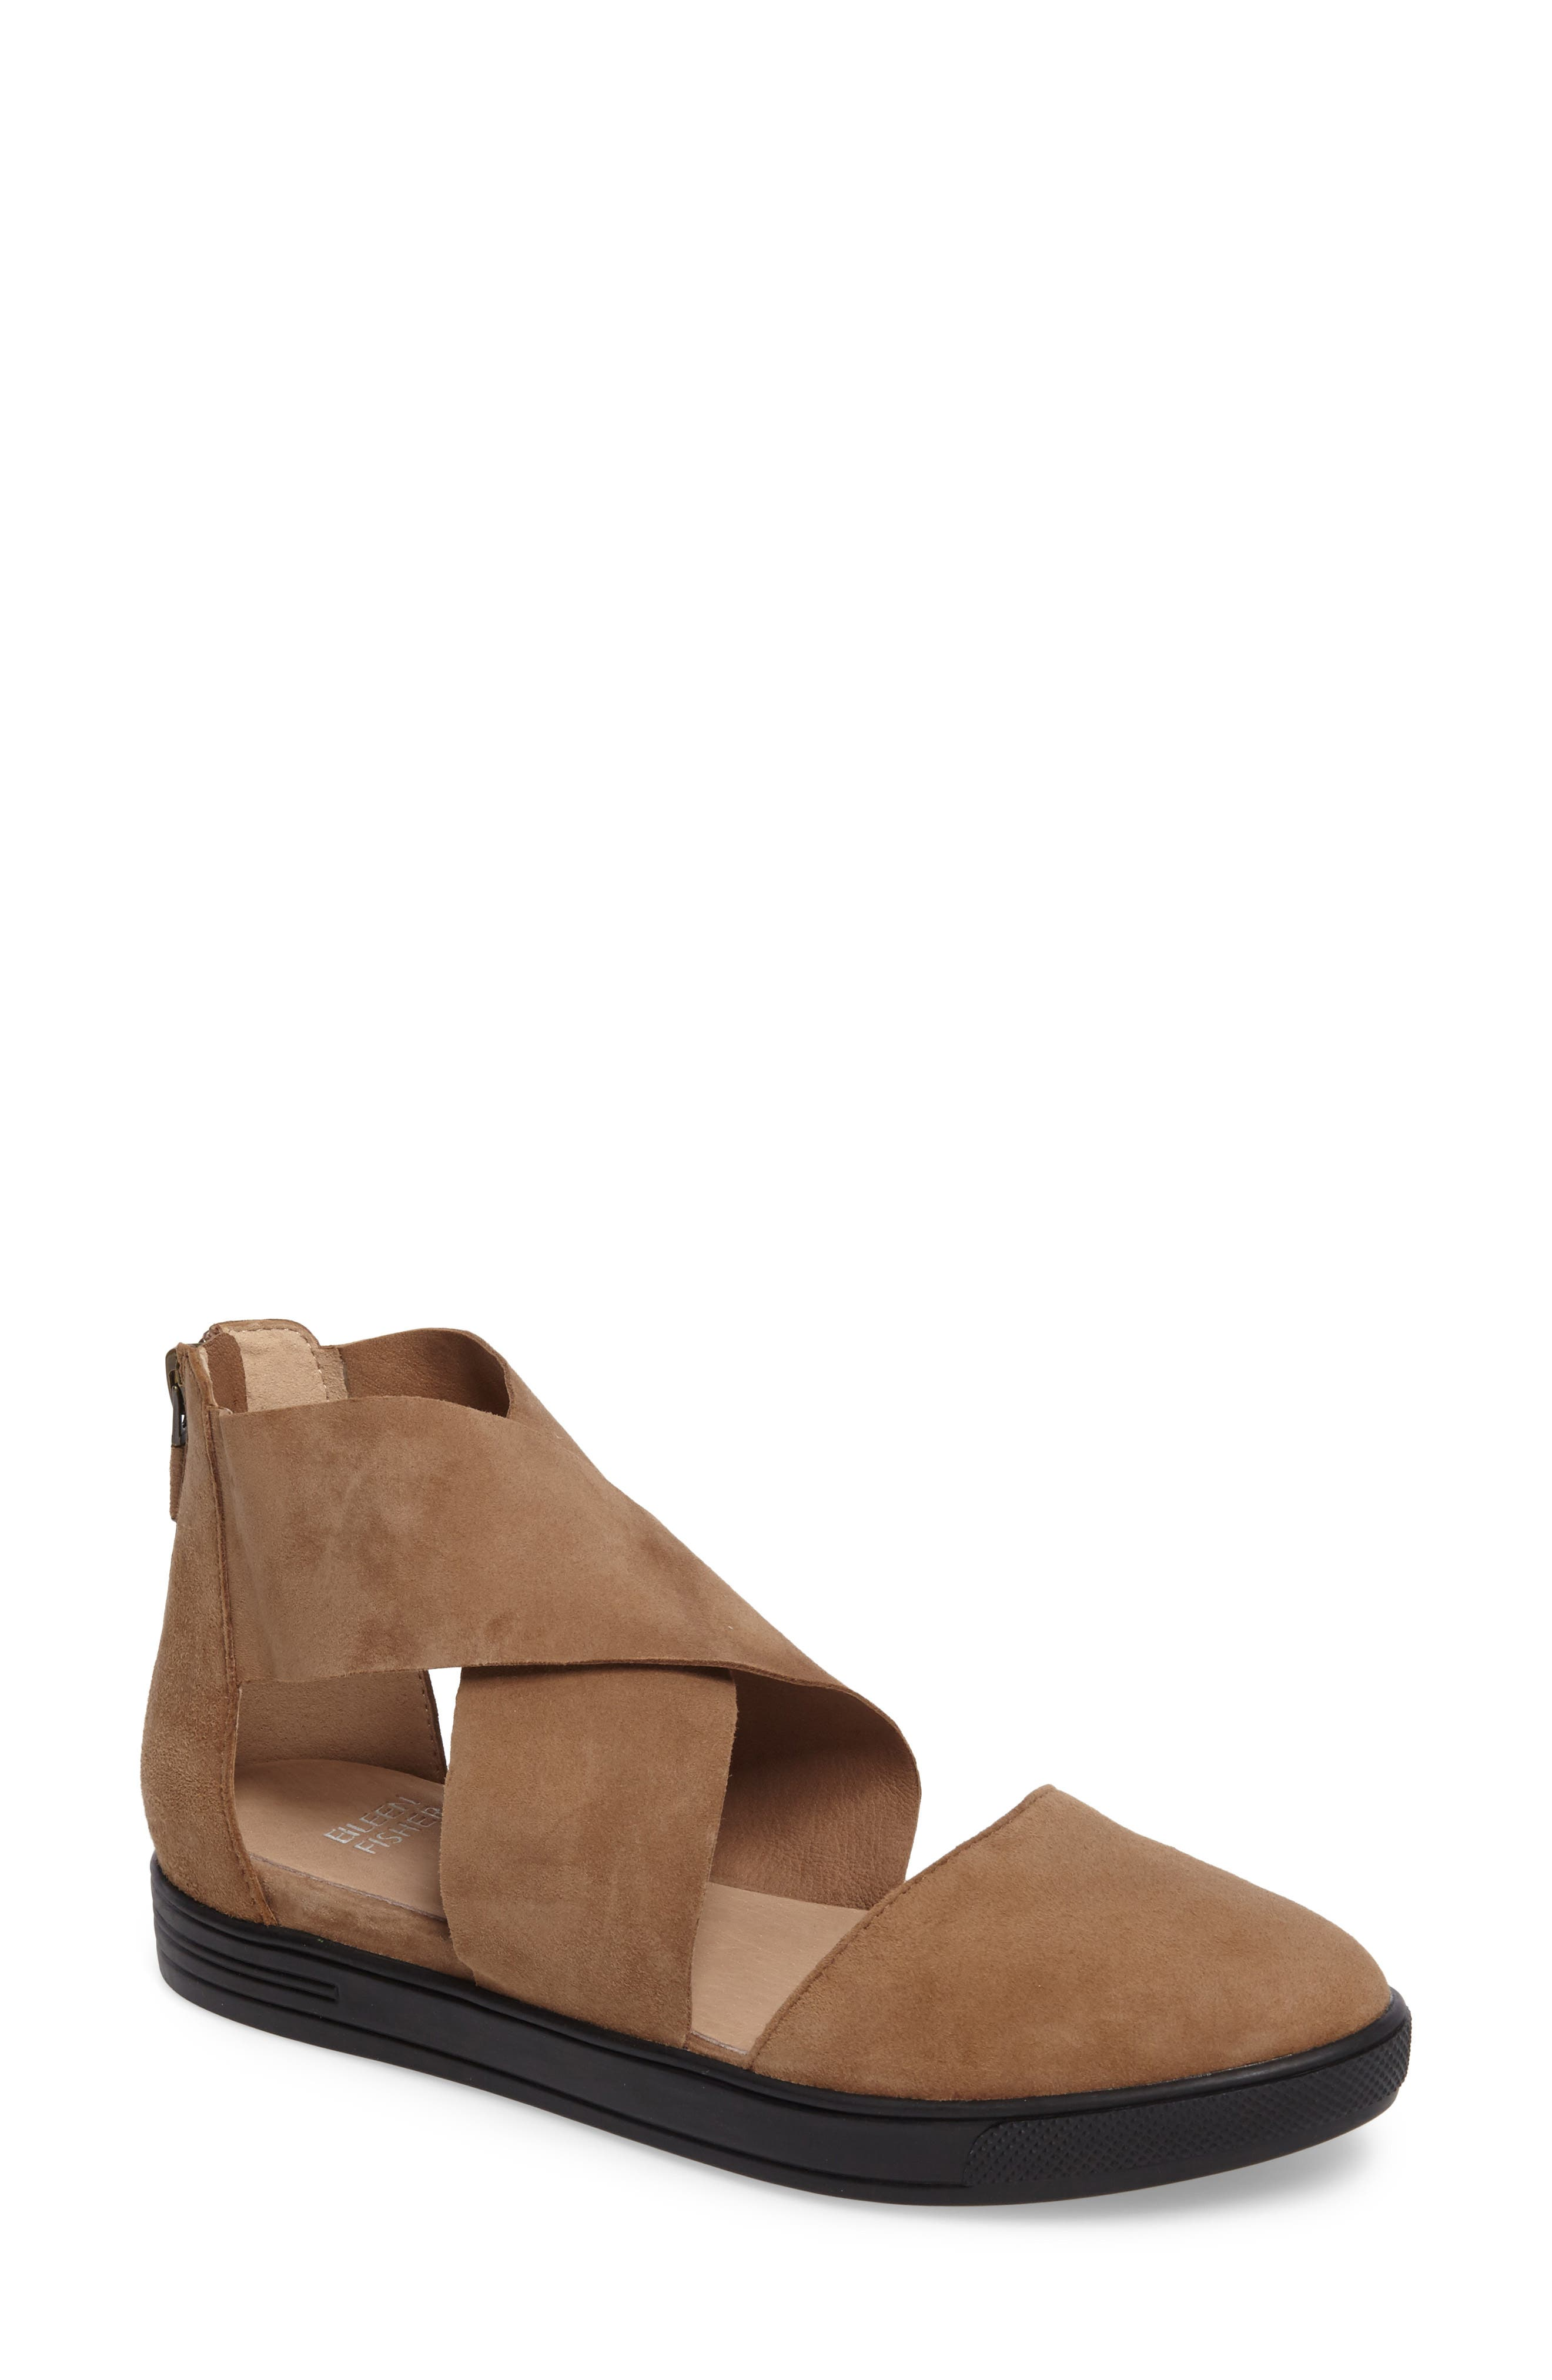 EILEEN FISHER Carver Flat